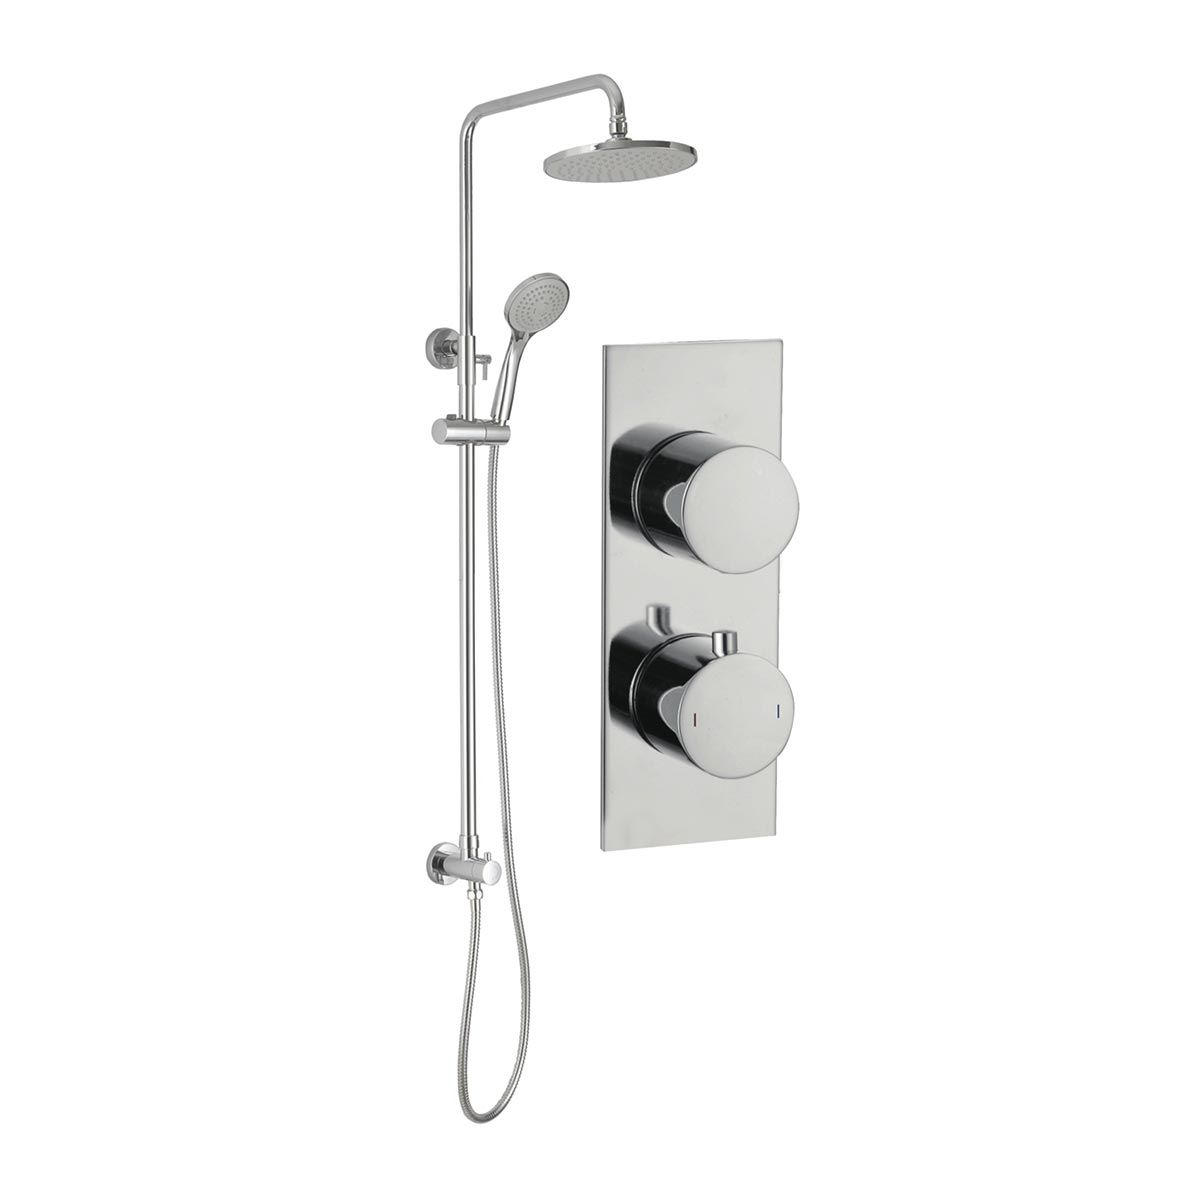 BTL Sphere Slim Plate Chrome Twin Concealed Mixer Shower with Handset and Fixed Head